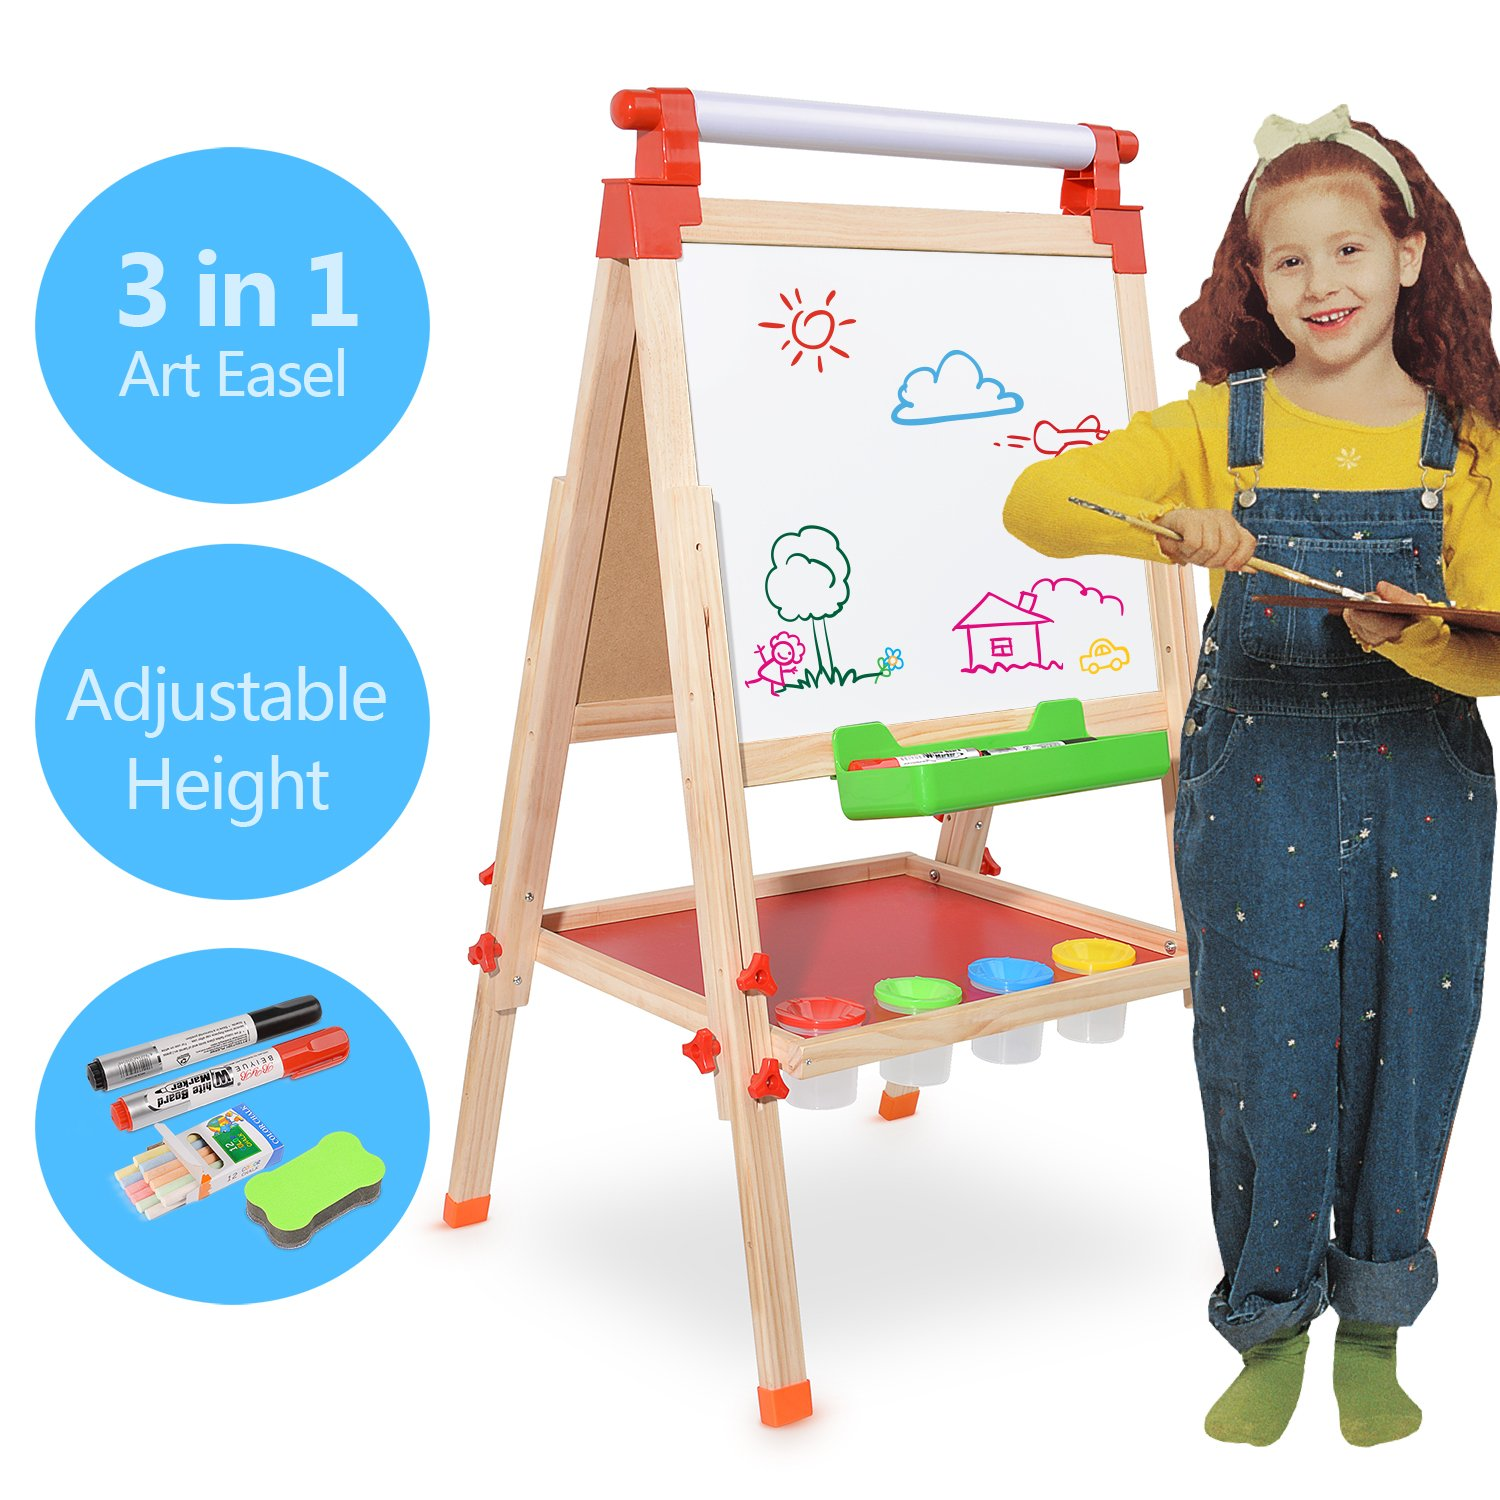 Amagoing Children Kids 3 in 1 Multifunctional Double Sided Black/White Wooden Easel with Paper Roll Art Station Chalk Drawing Board Adjustable